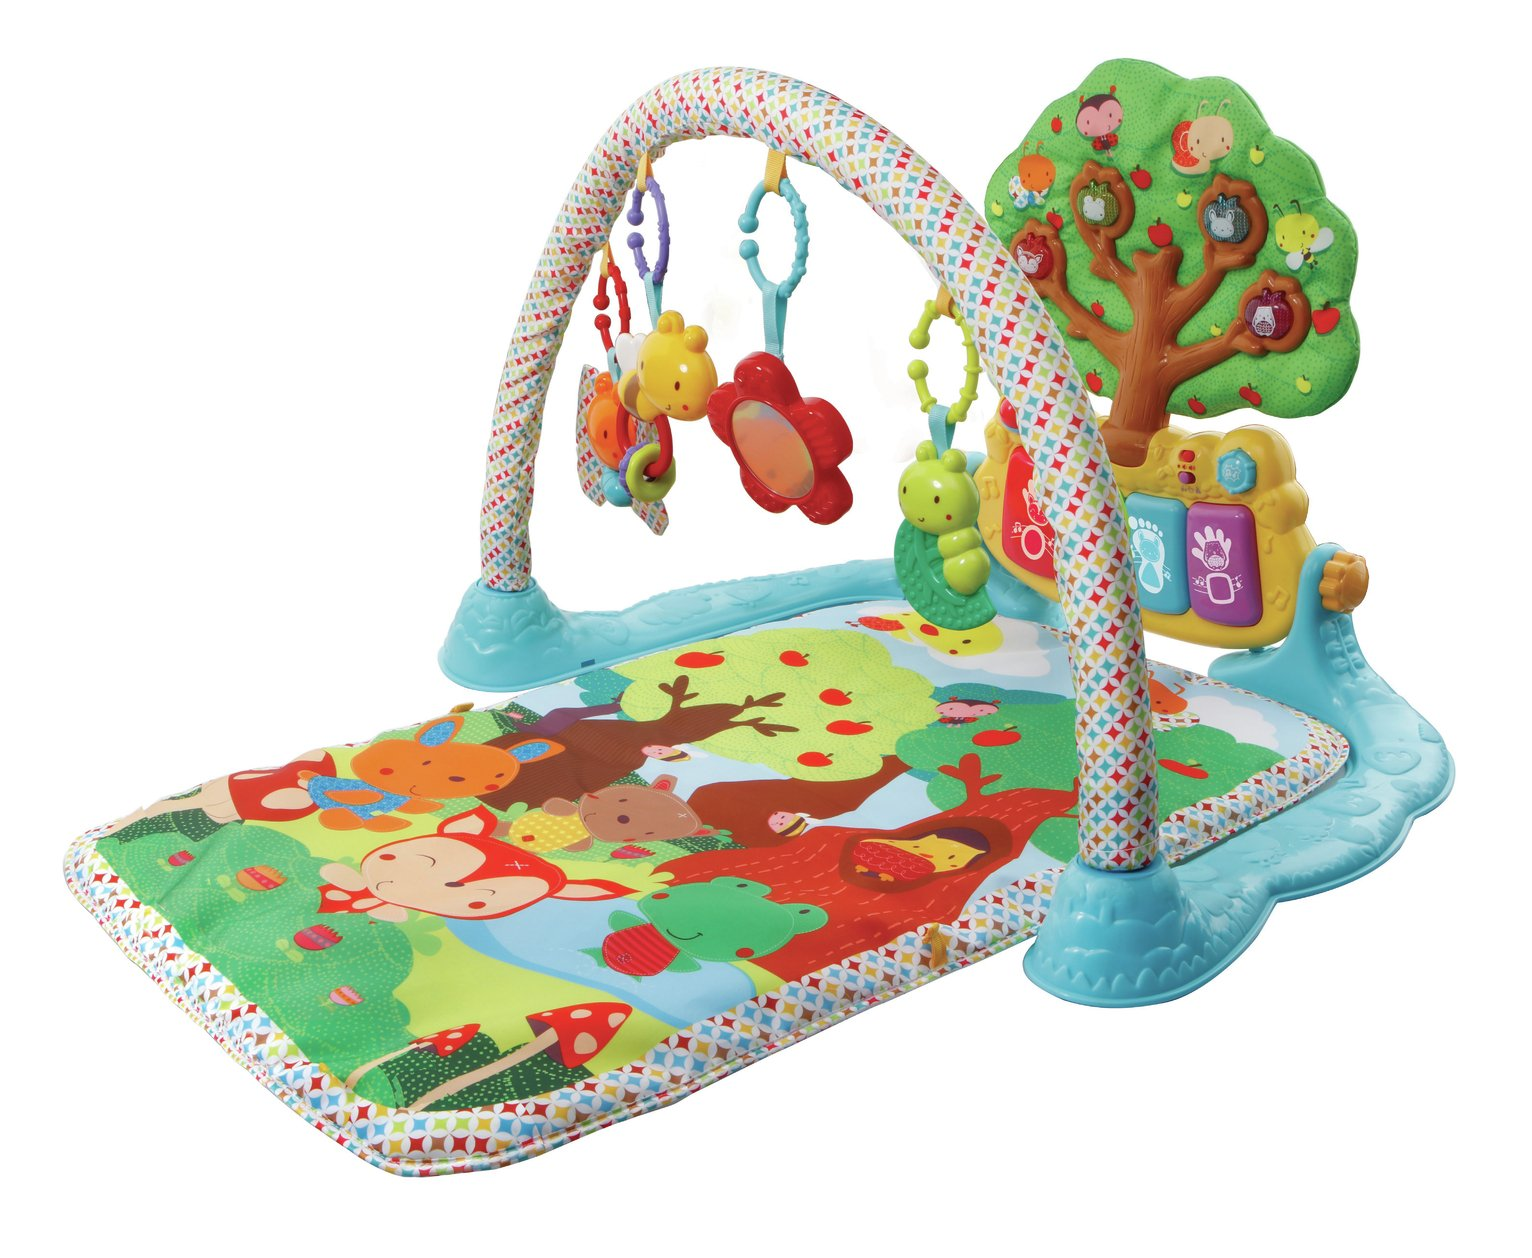 VTech Friendlies Glow and Giggle Playmat